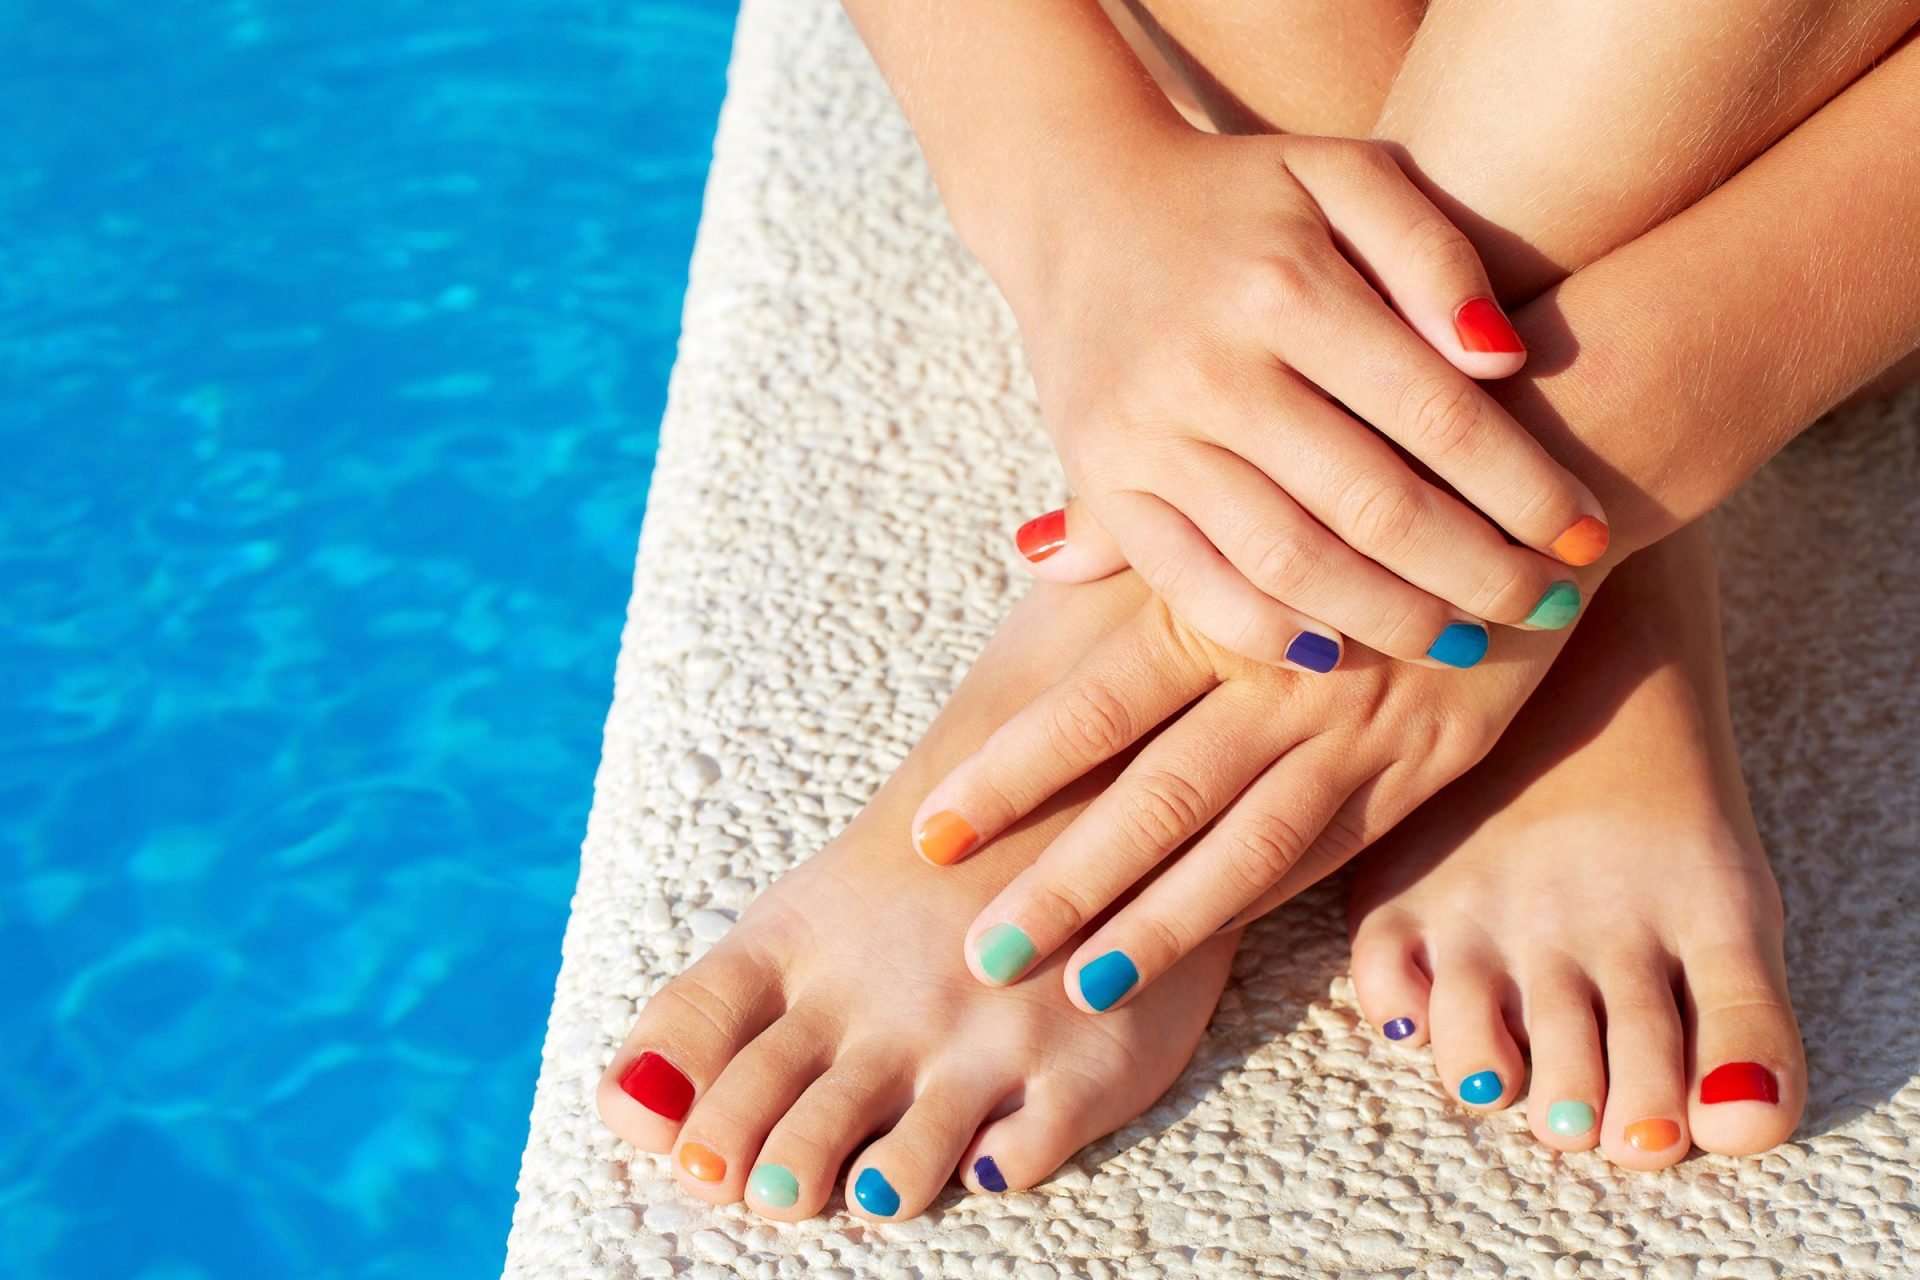 How to Get Your Feet Ready for Summer? My Foot Care & Pedicure